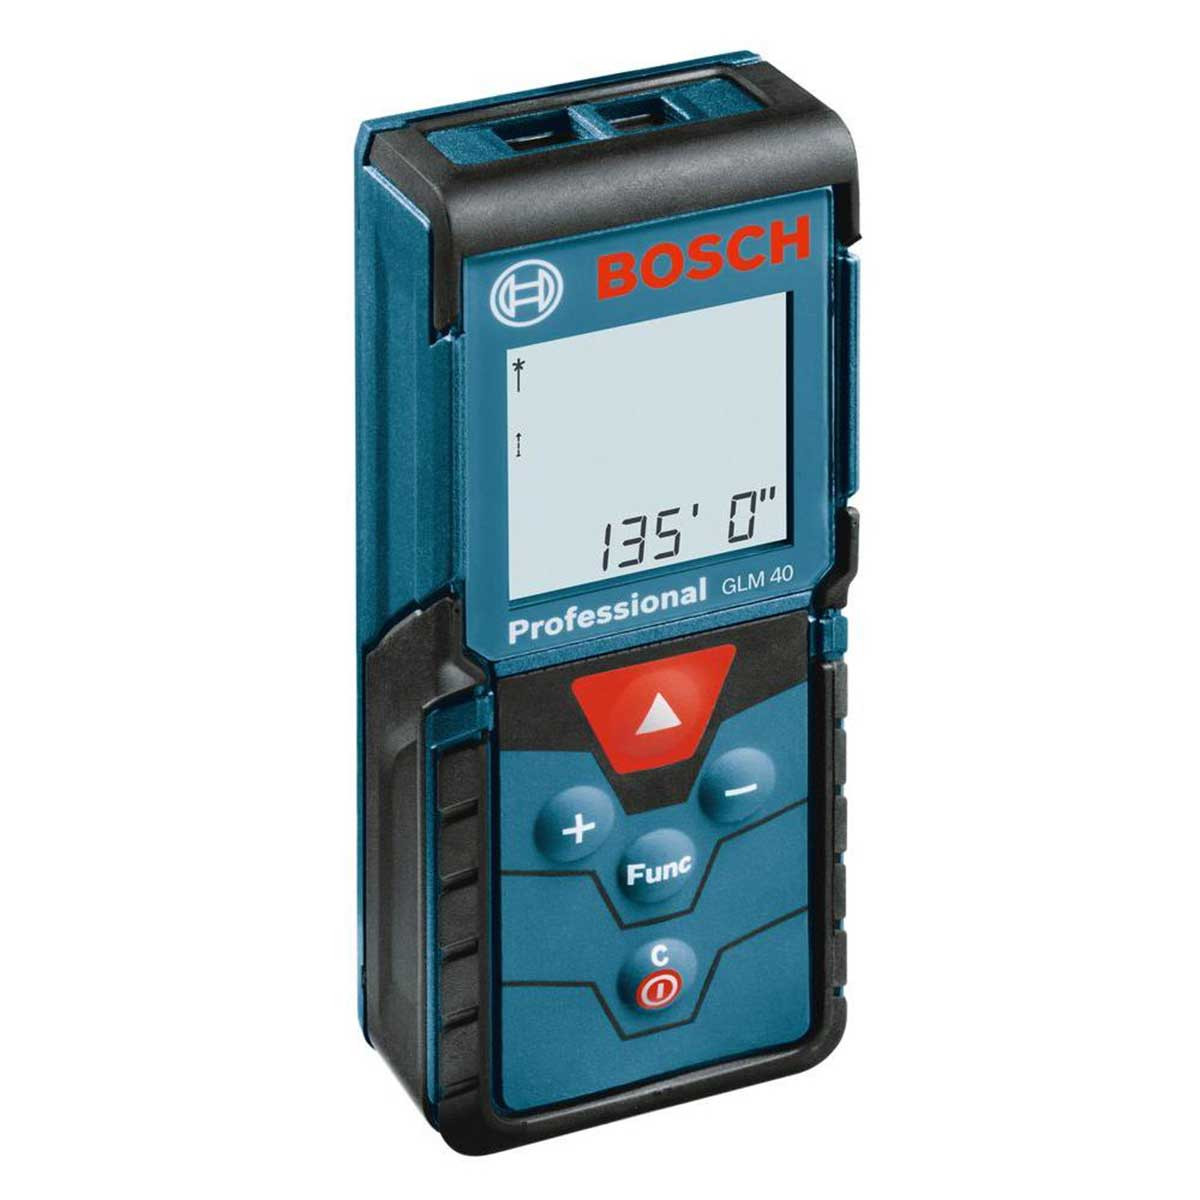 Bosch 140 ft. Compact Laser Measure